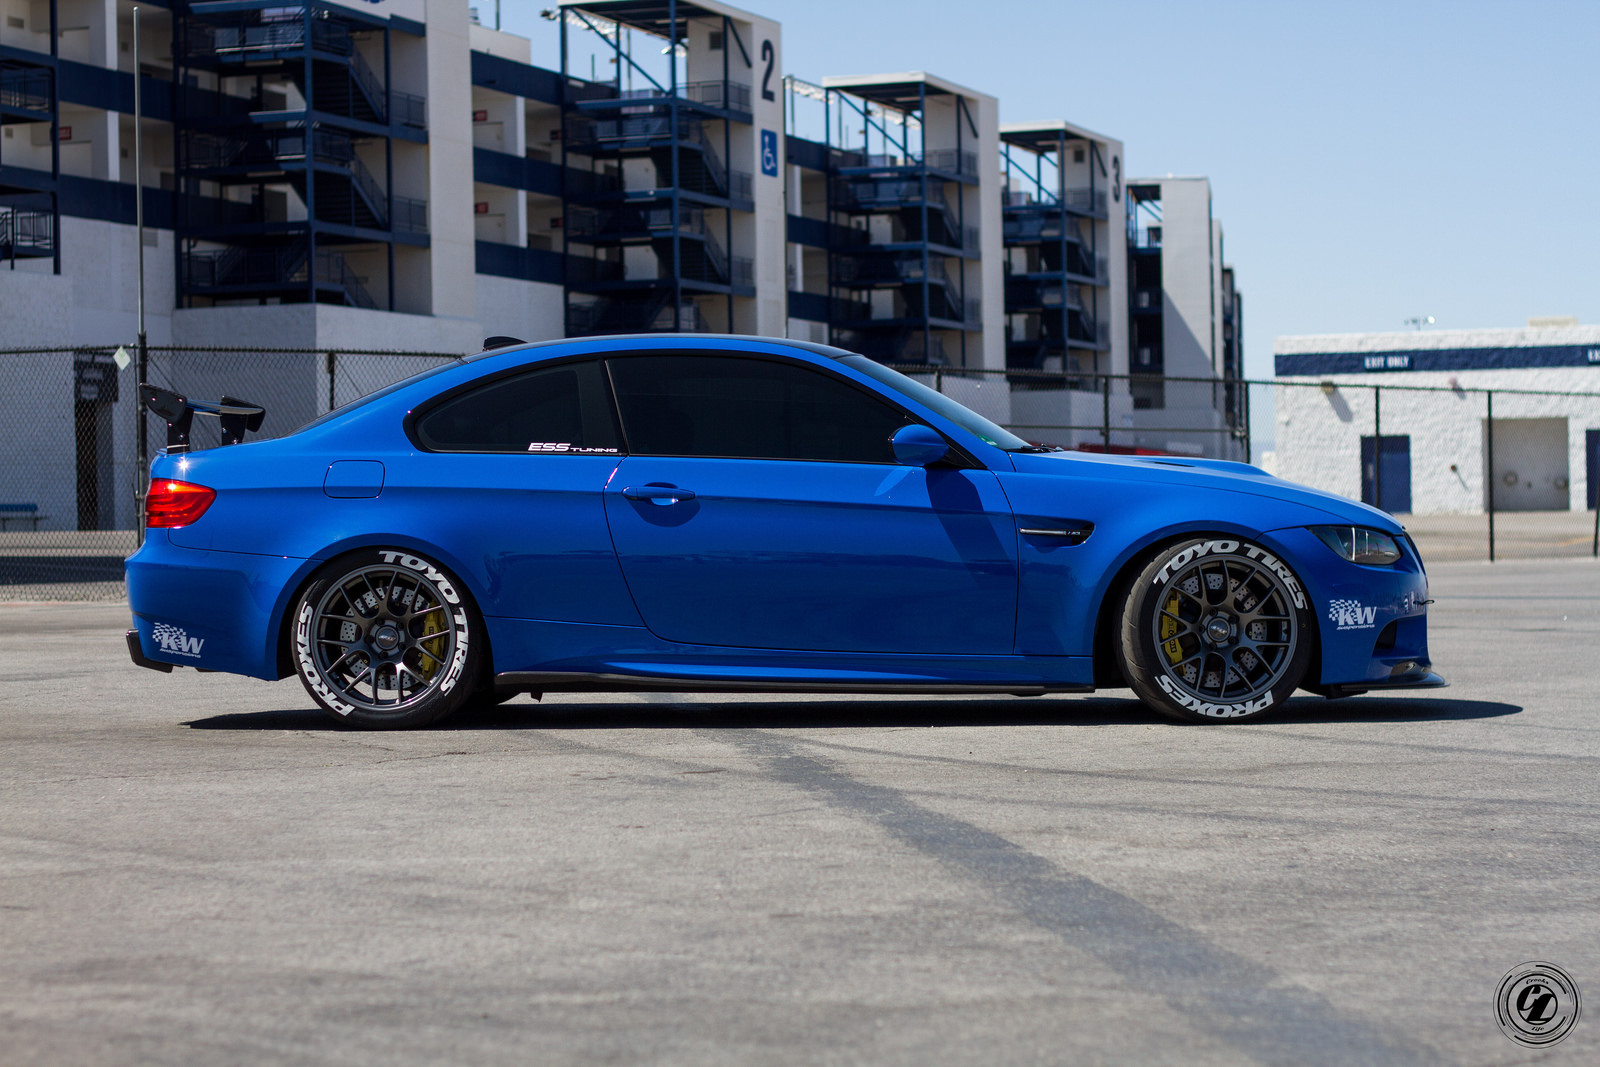 Cars For Sale In Ri >> Santorini Blue BMW E92 M3 Is Here to Take You Down - autoevolution